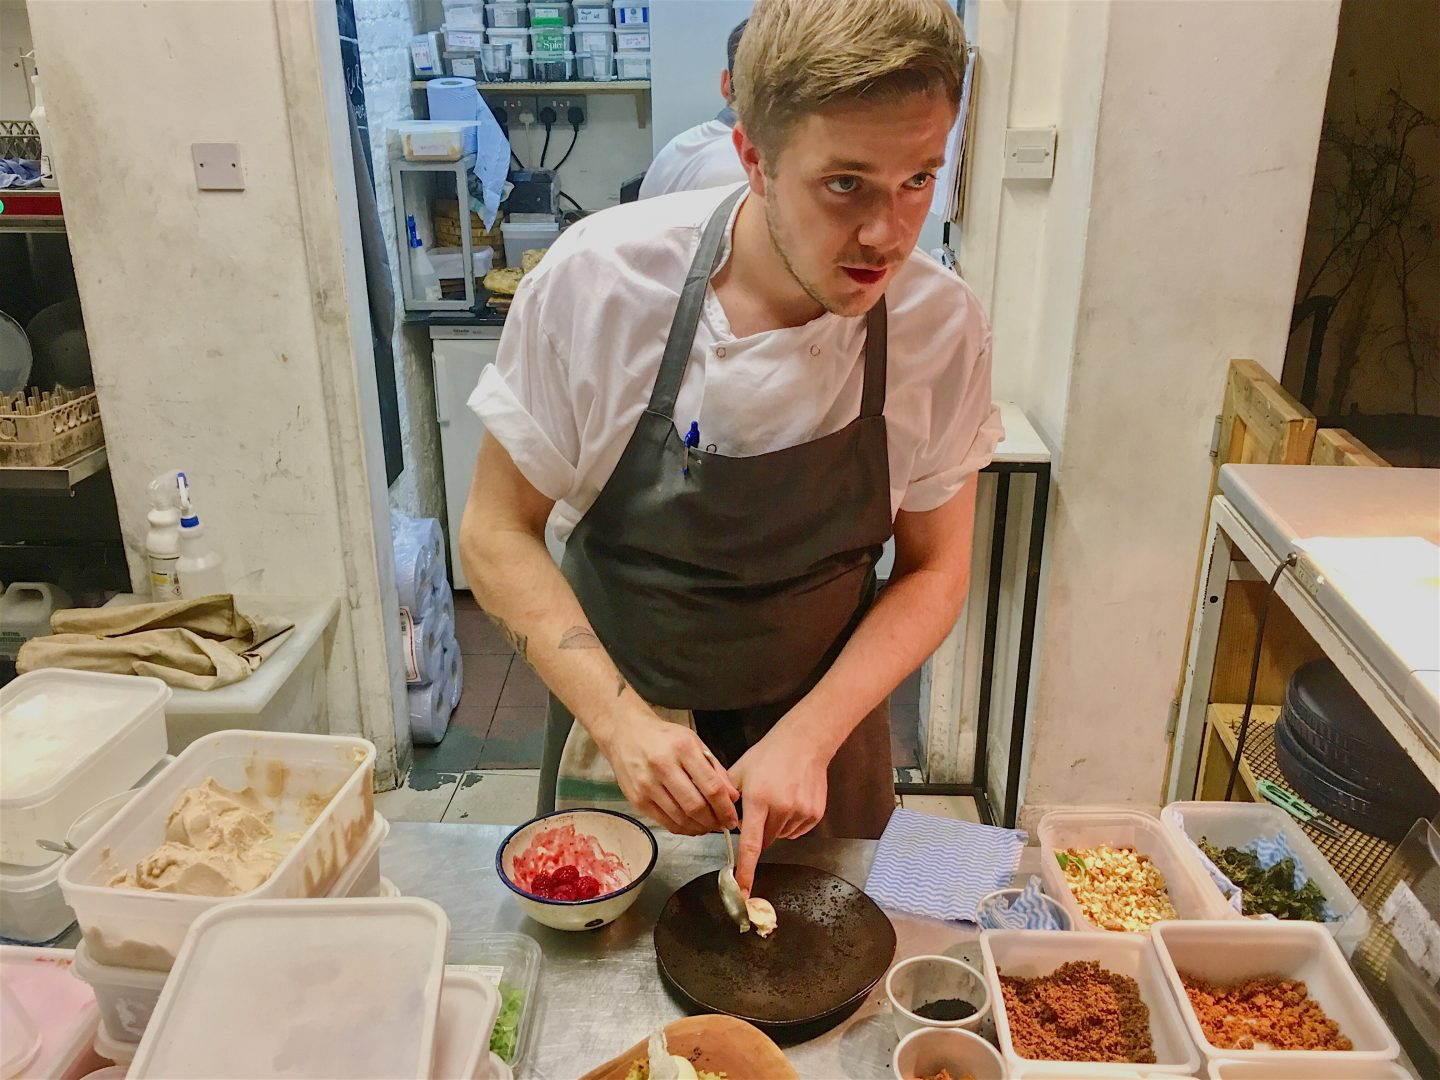 Head chef at Native in Neal's Yard, Covent Garden